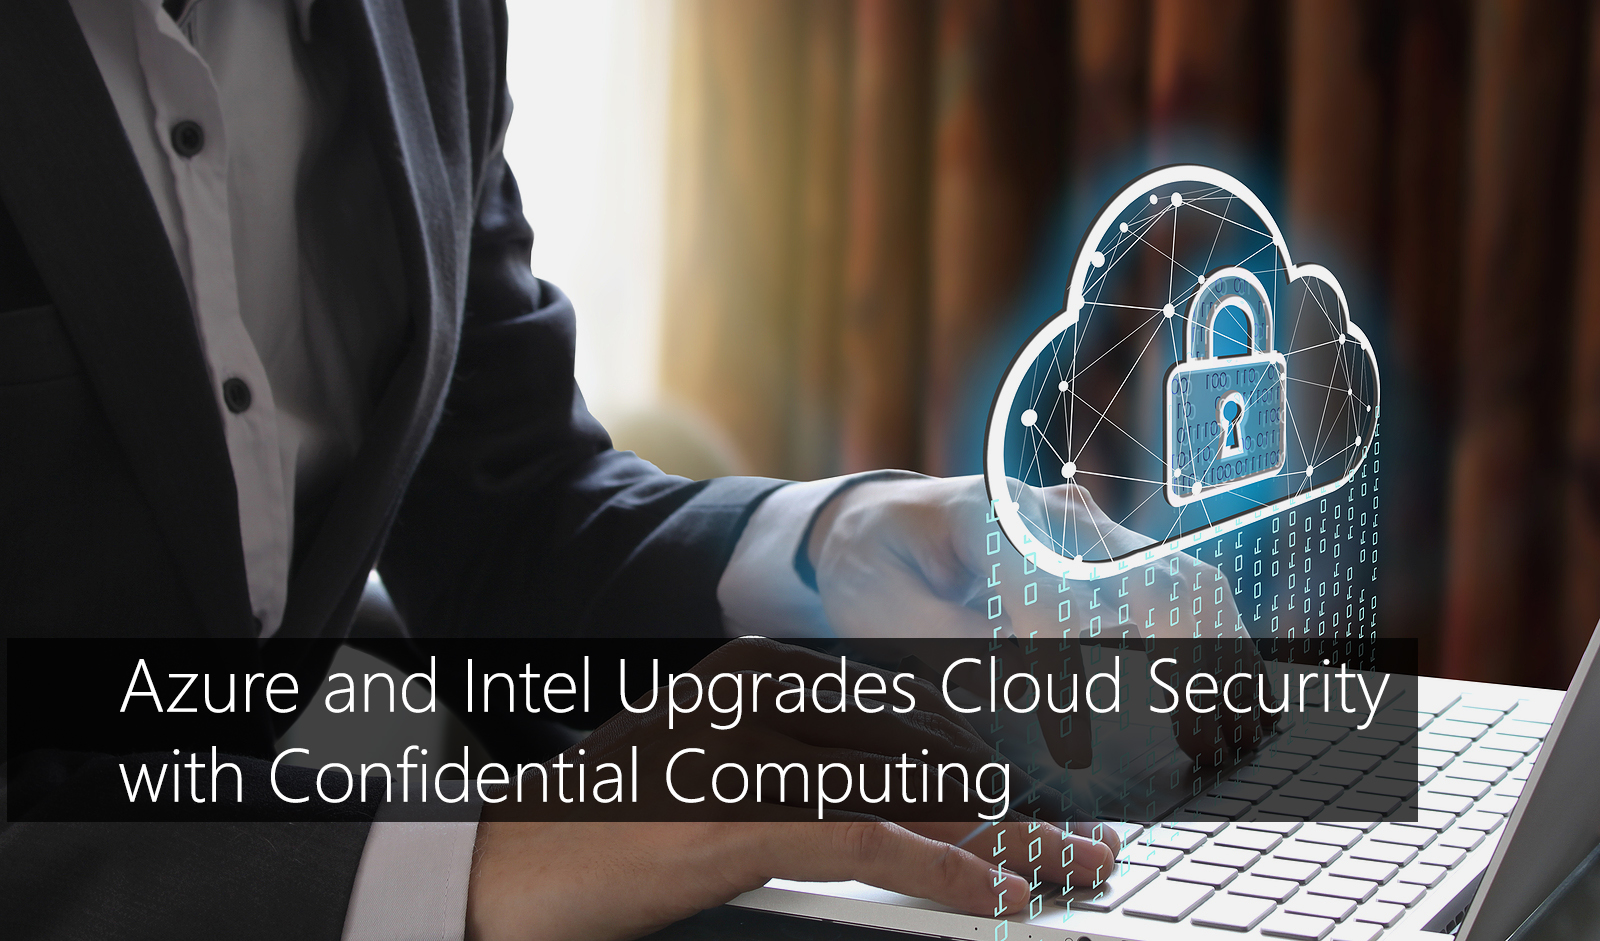 Azure and Intel Upgrades Cloud Security with Confidential Computing